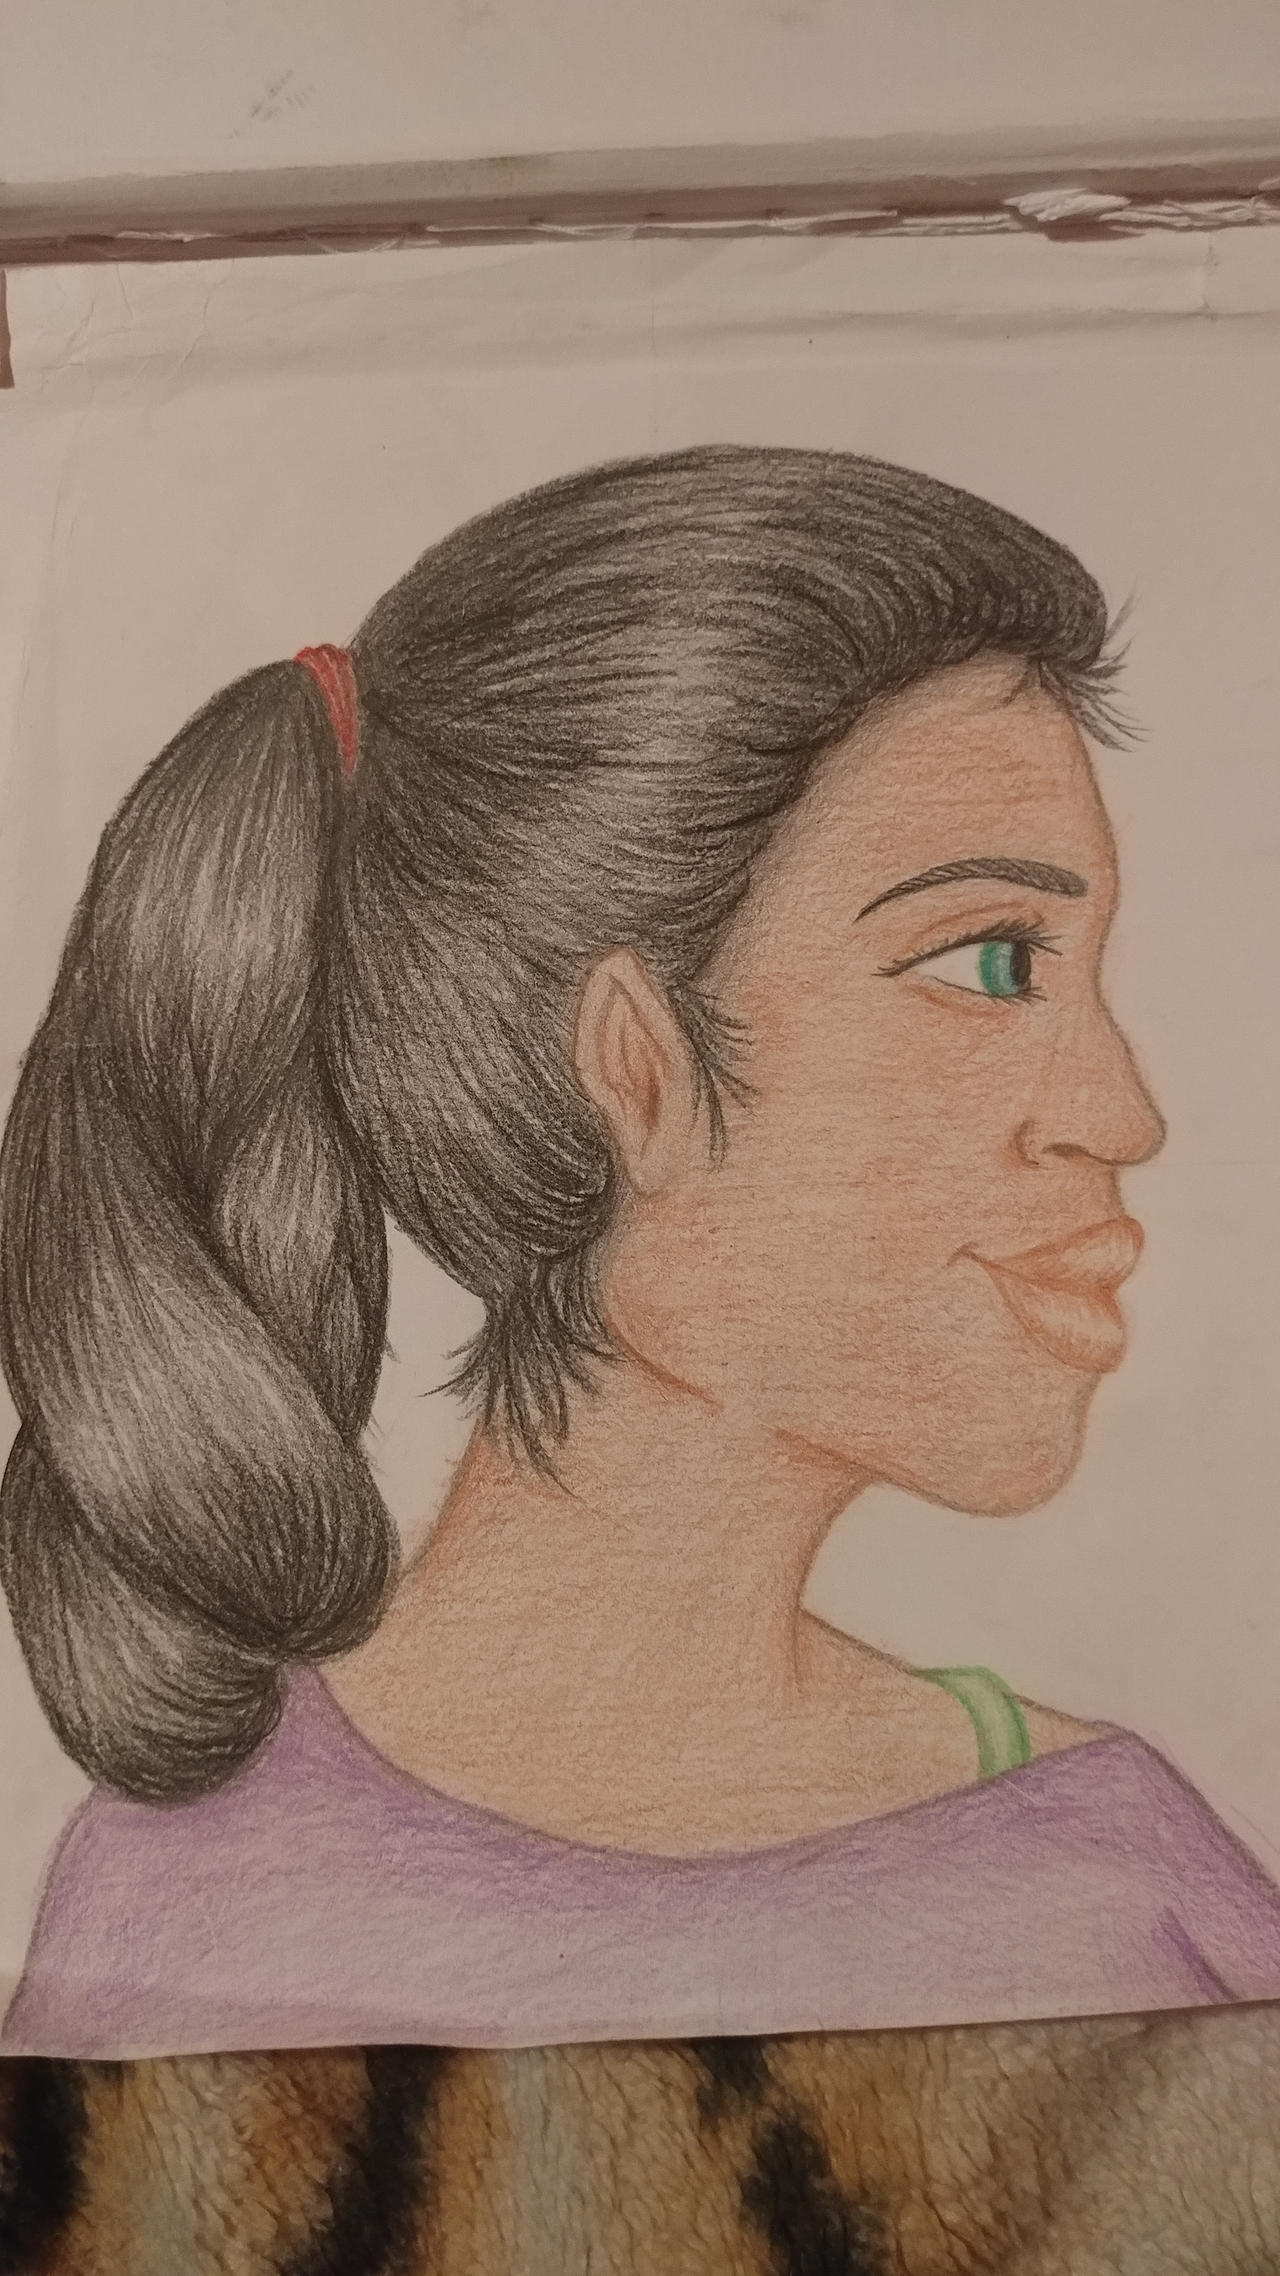 Side Profile Face Female By Xxccdrawsxx On Deviantart